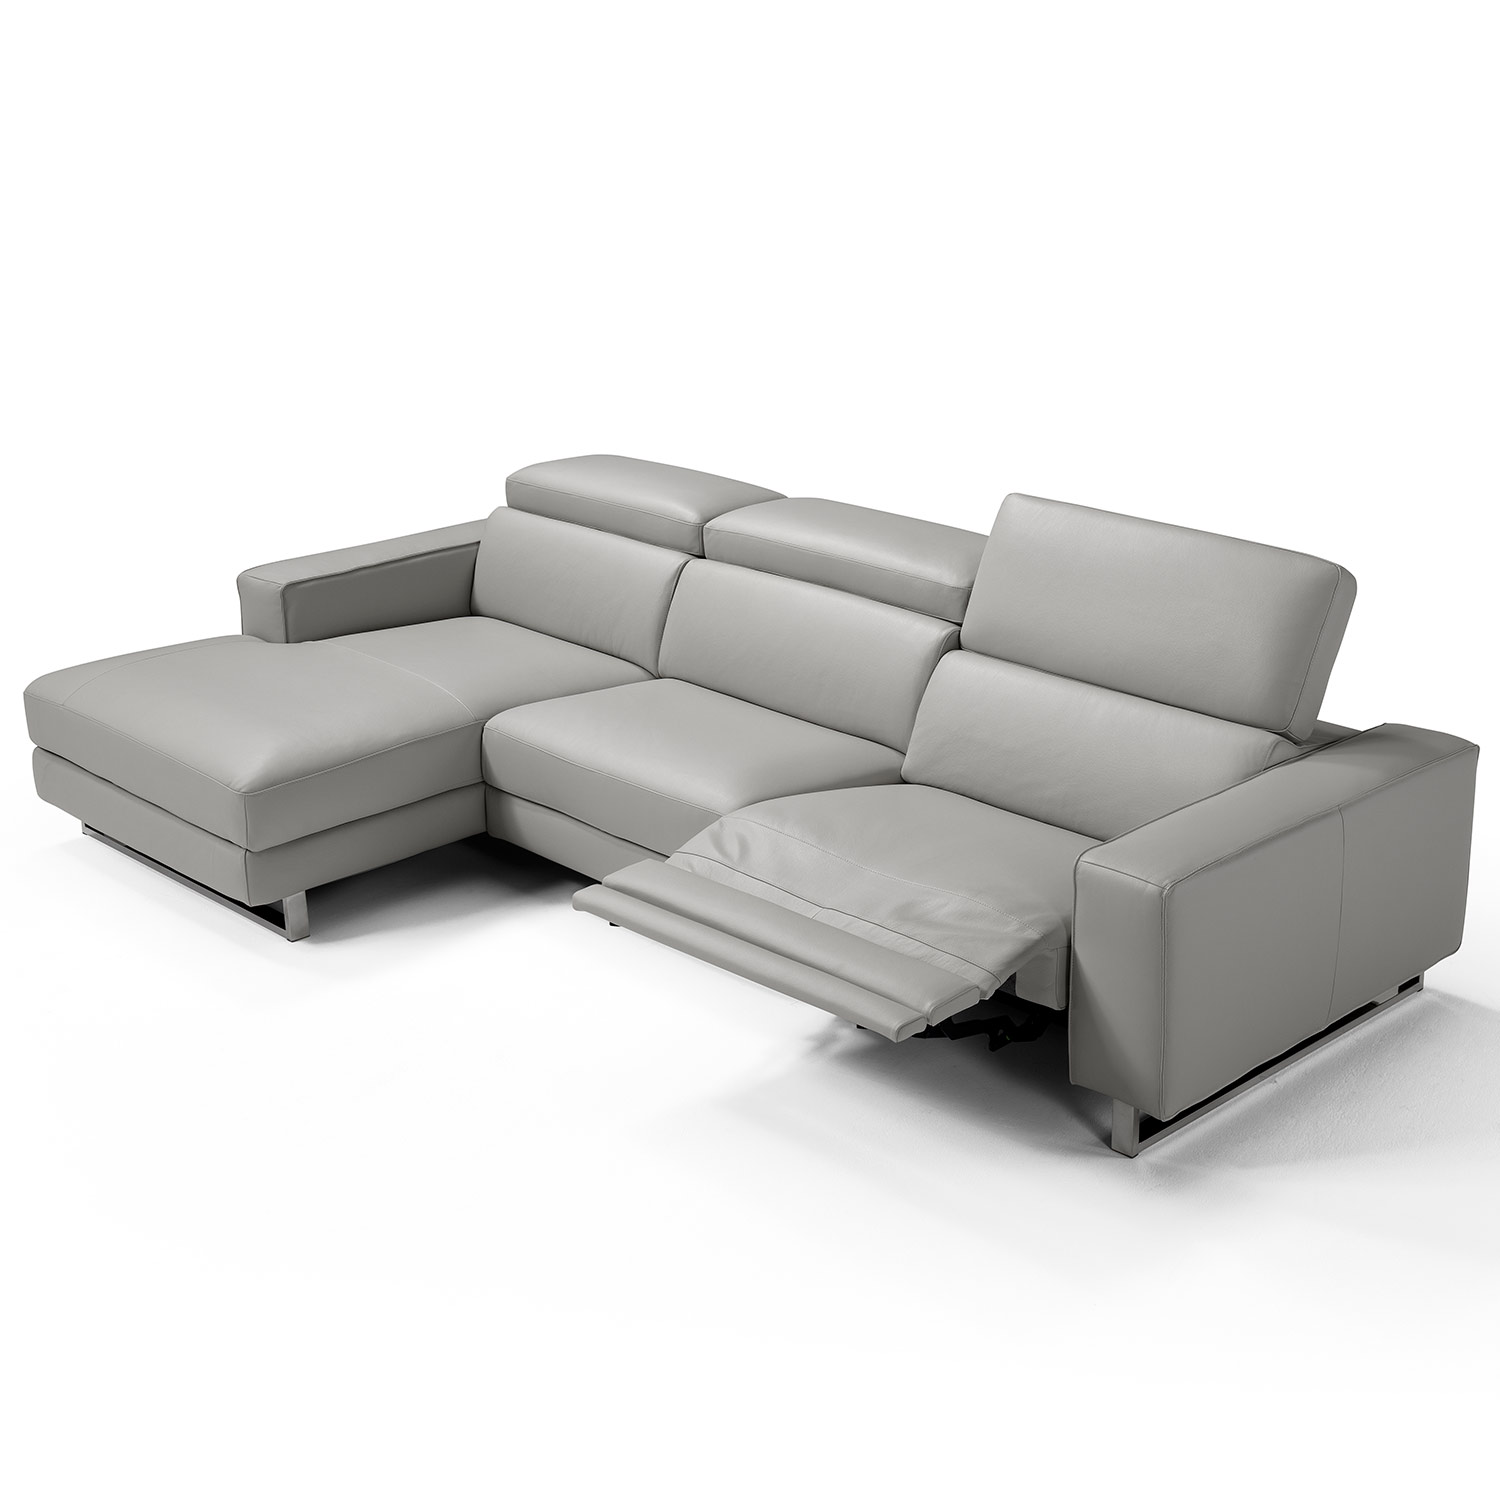 Augusto Sectional Sofa w/ Left Chaise & Right Recliner in Grey Top Grain  Italian Leather by Whiteline Modern Living